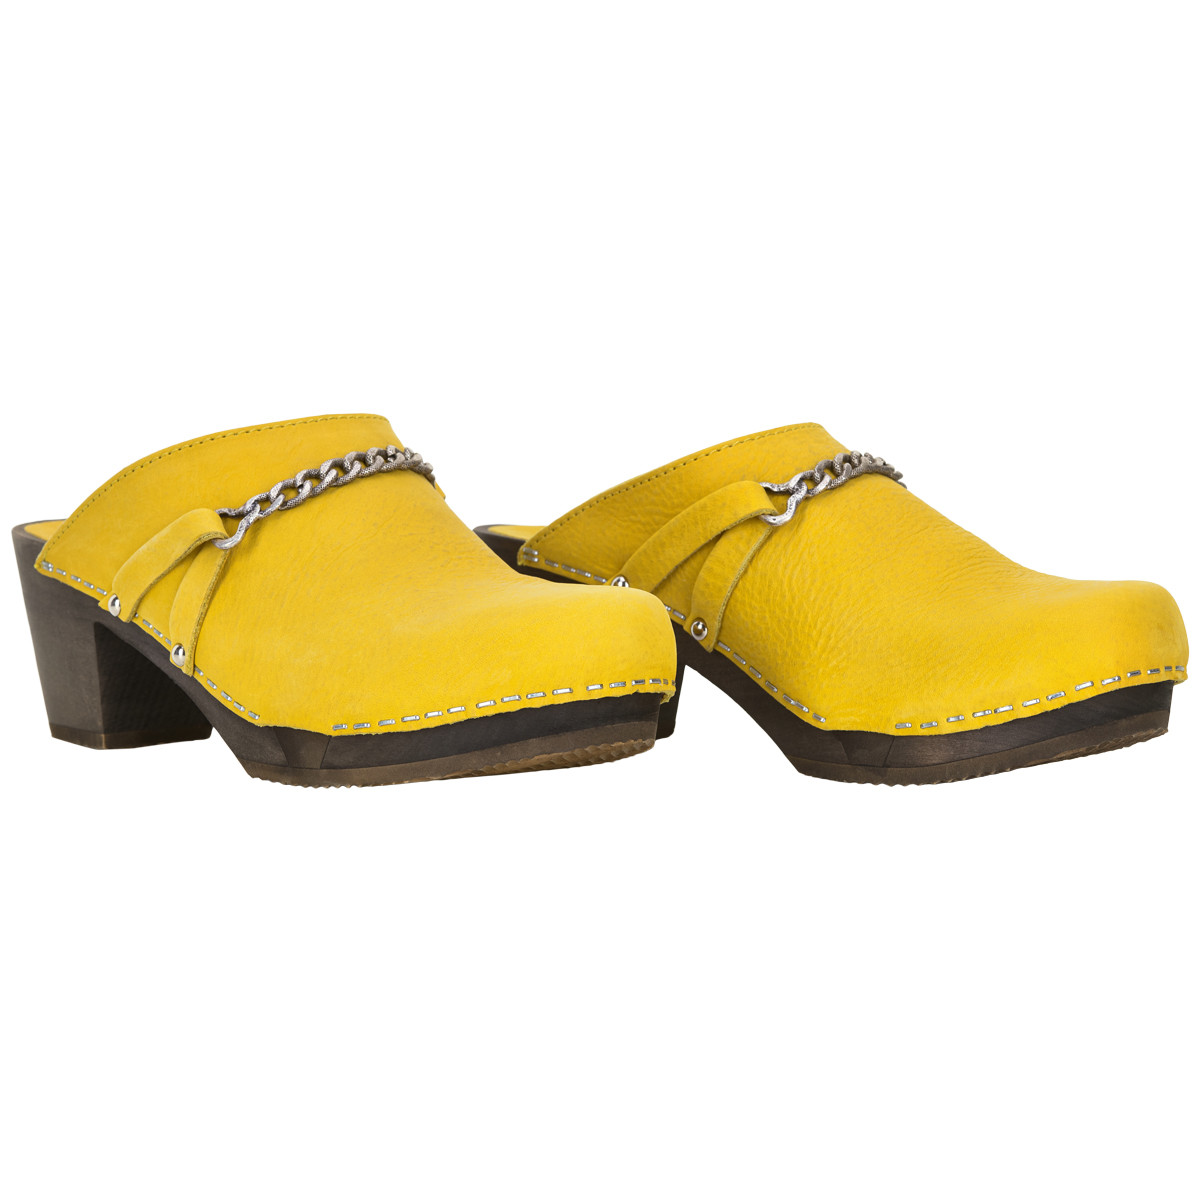 Sanita Avi Flex Clogs 470100 7